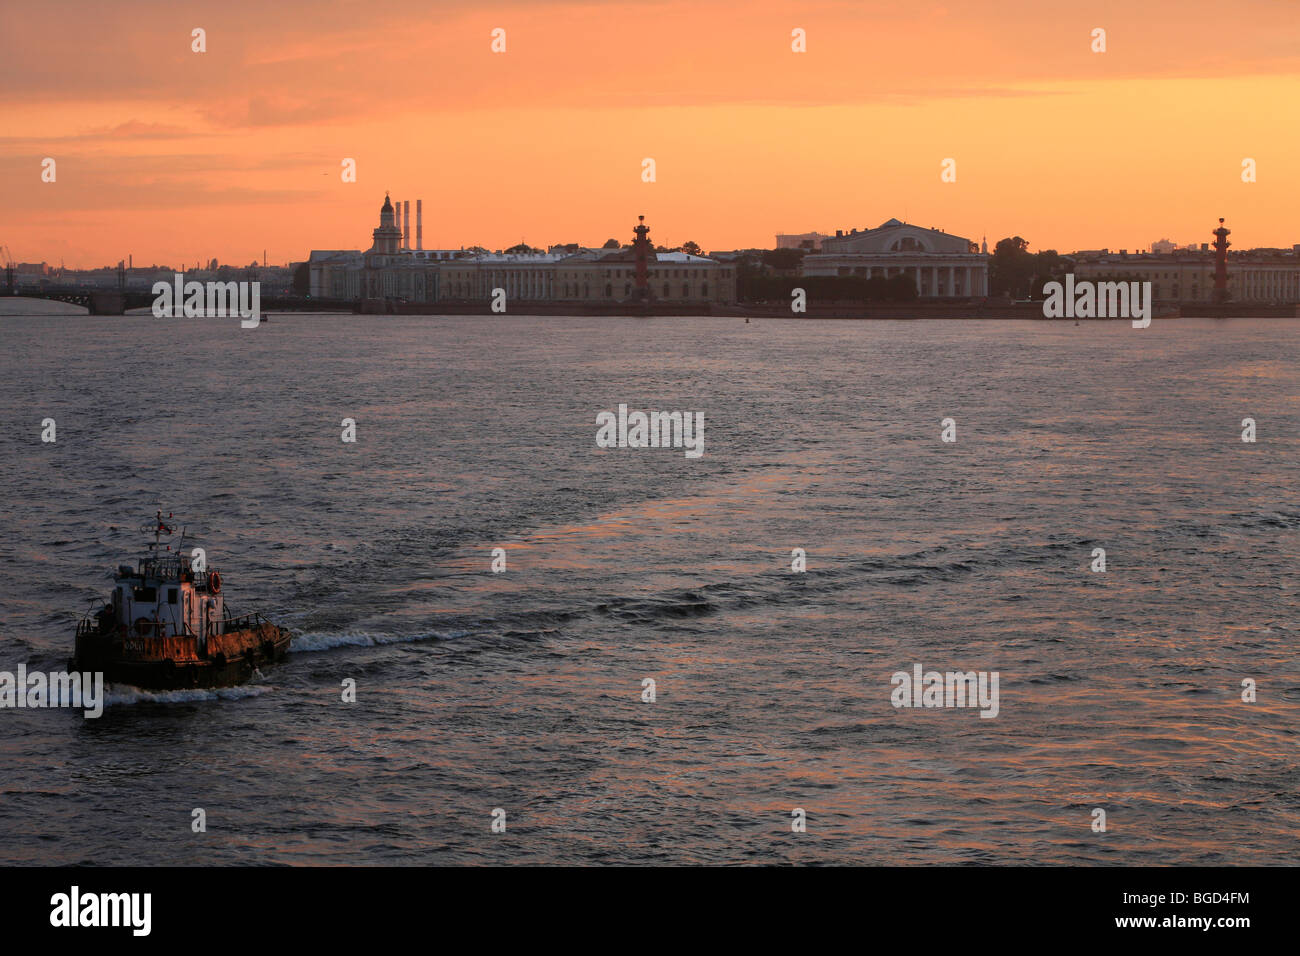 Tugboat on the Neva River with the Central Naval Museum in the background in Saint Petersburg, Russia Stock Photo